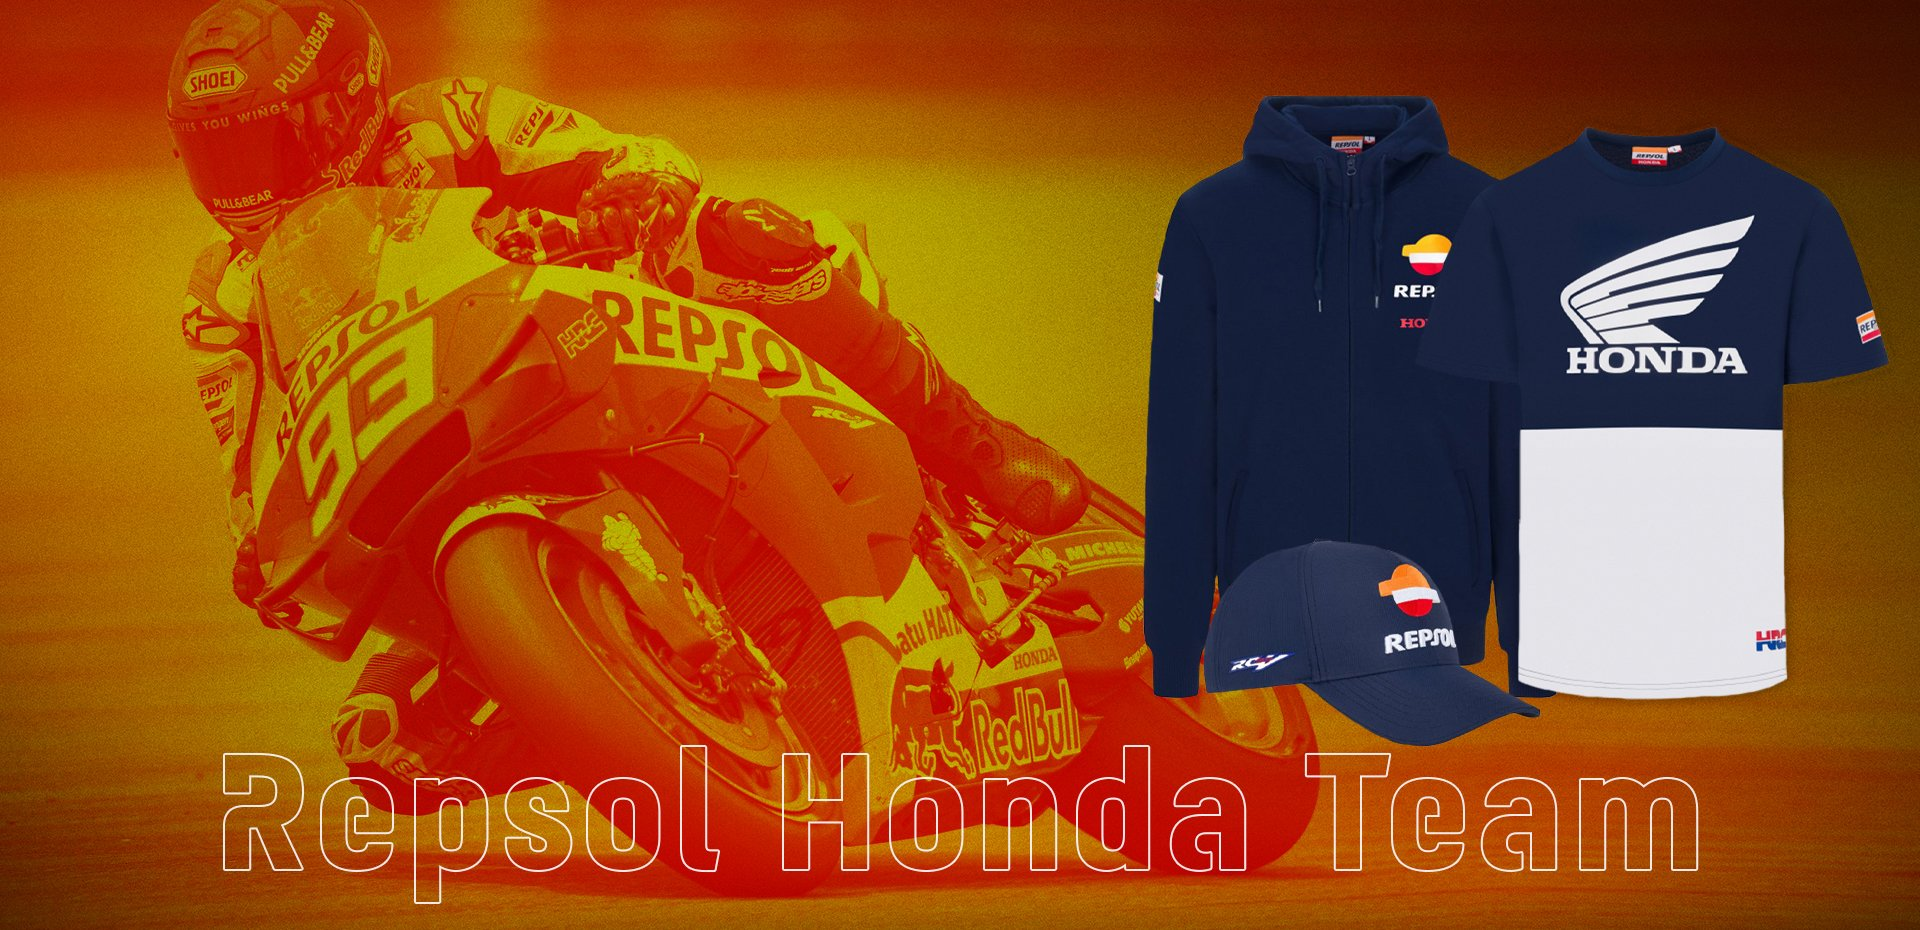 Repsol Honda is ready for the challenge!